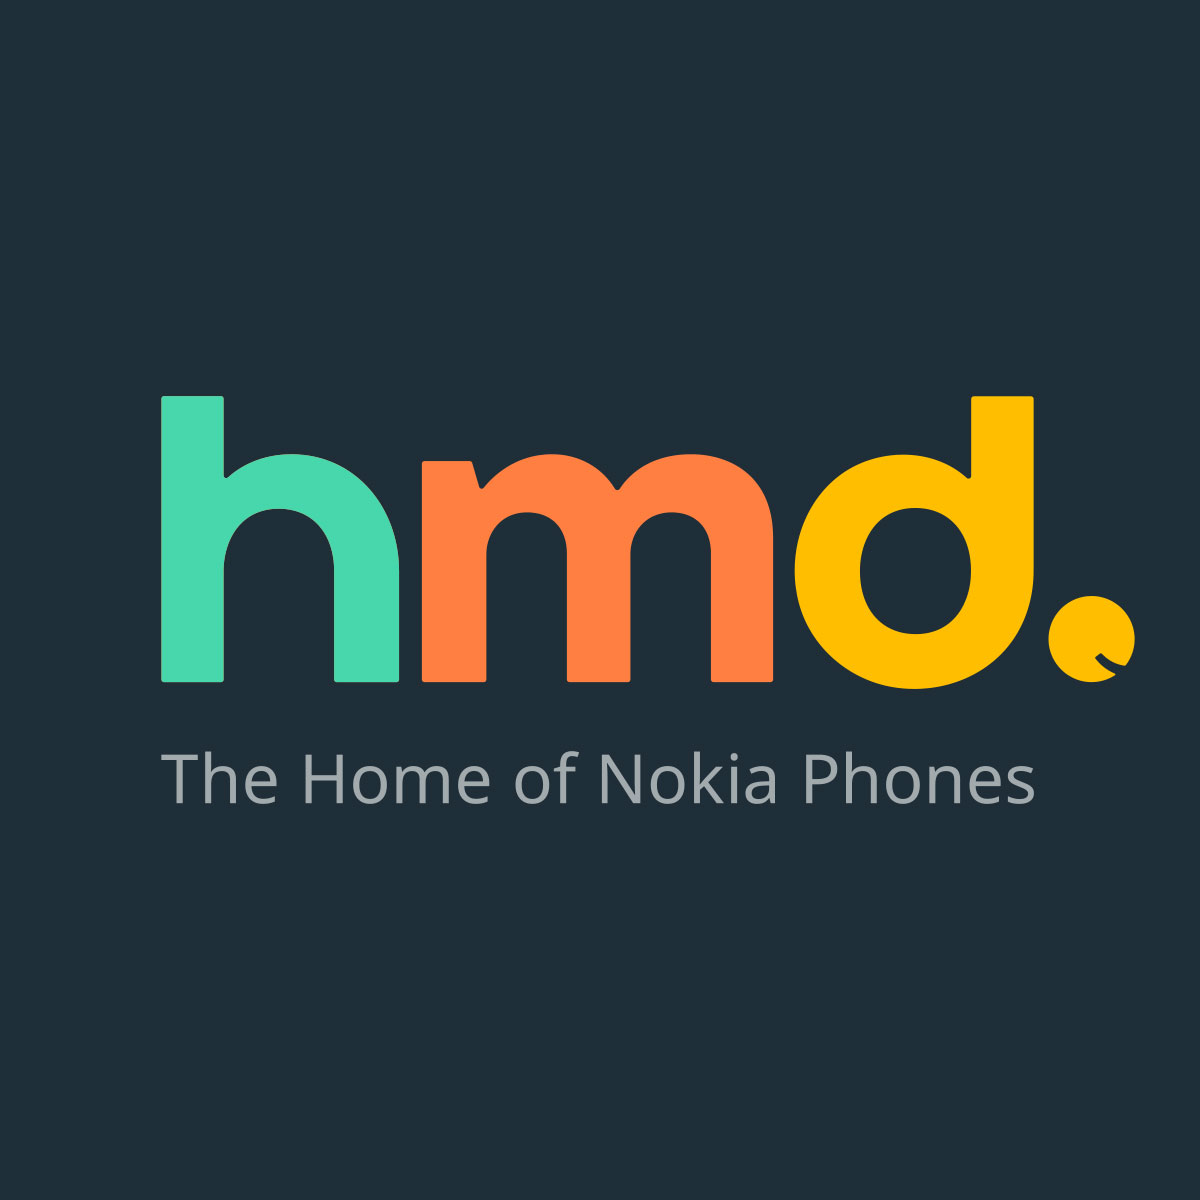 Black Friday hacks you can rely on - HMD Global, The Home of Nokia Phones  share their top tips for bargain hunting mobile shoppers